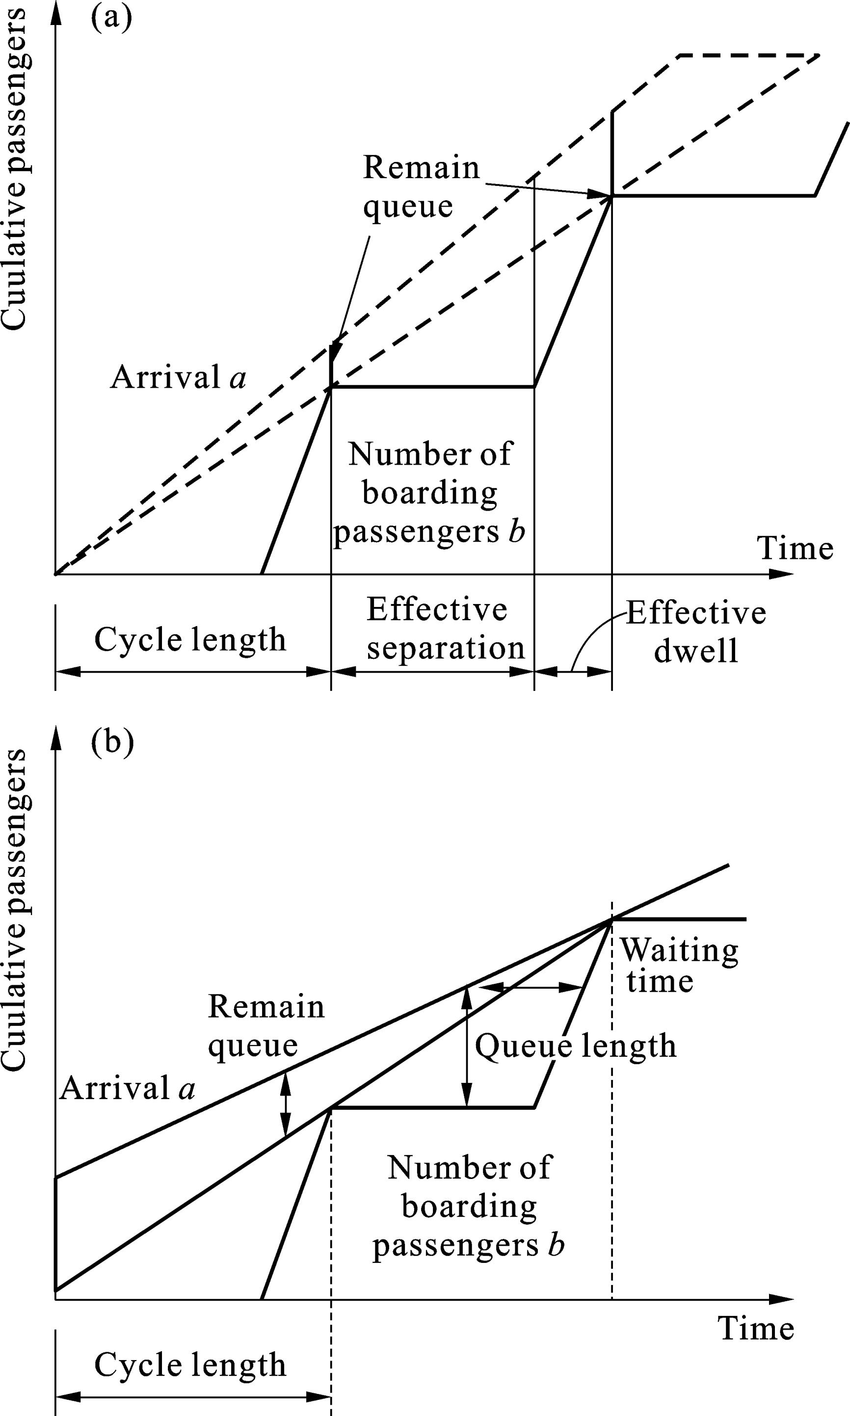 Relationship between arrivals, boarding passengers, queue